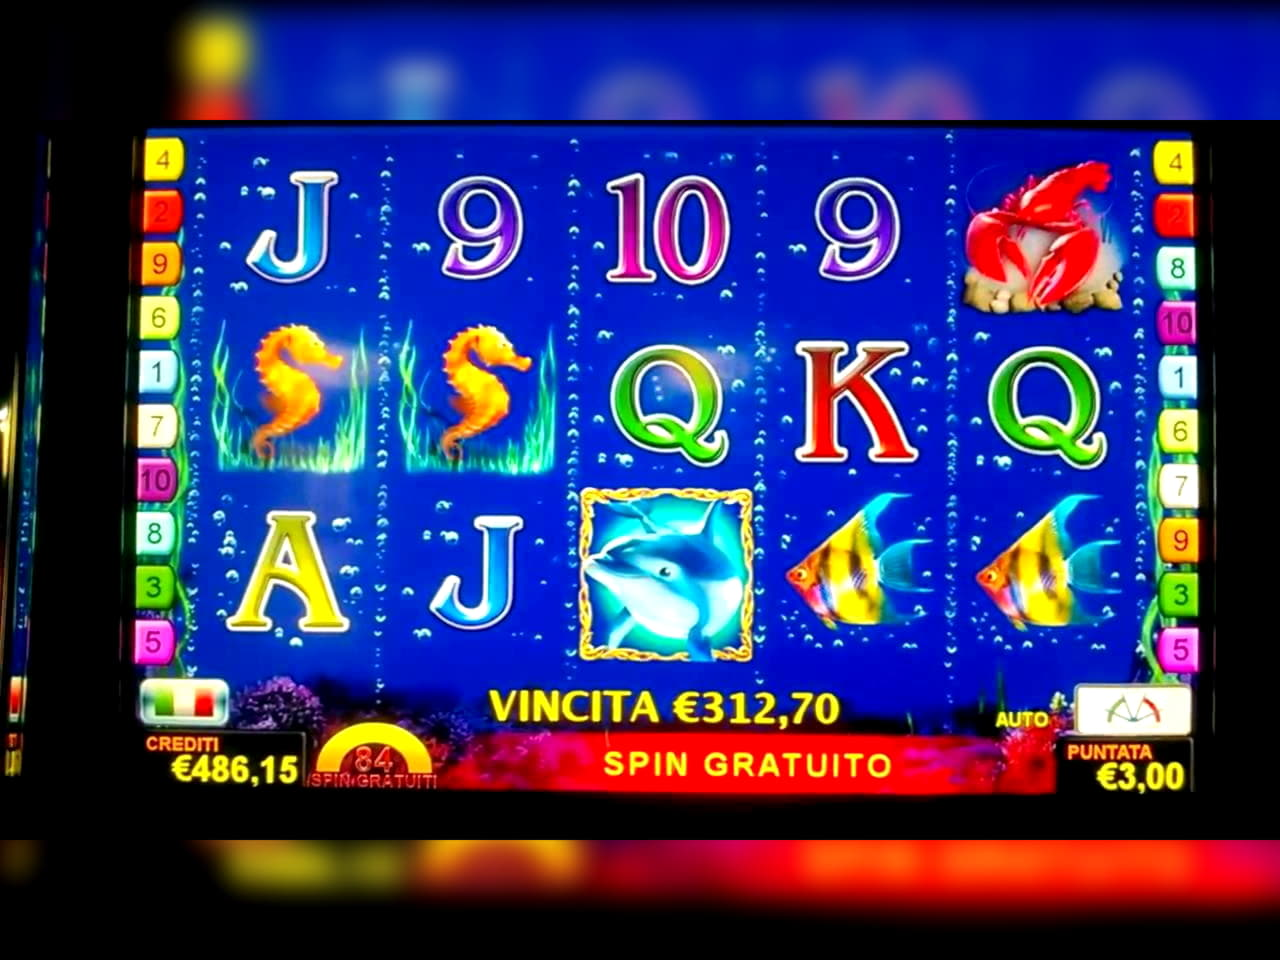 €2100 No deposit bonus casino at Yes Casino